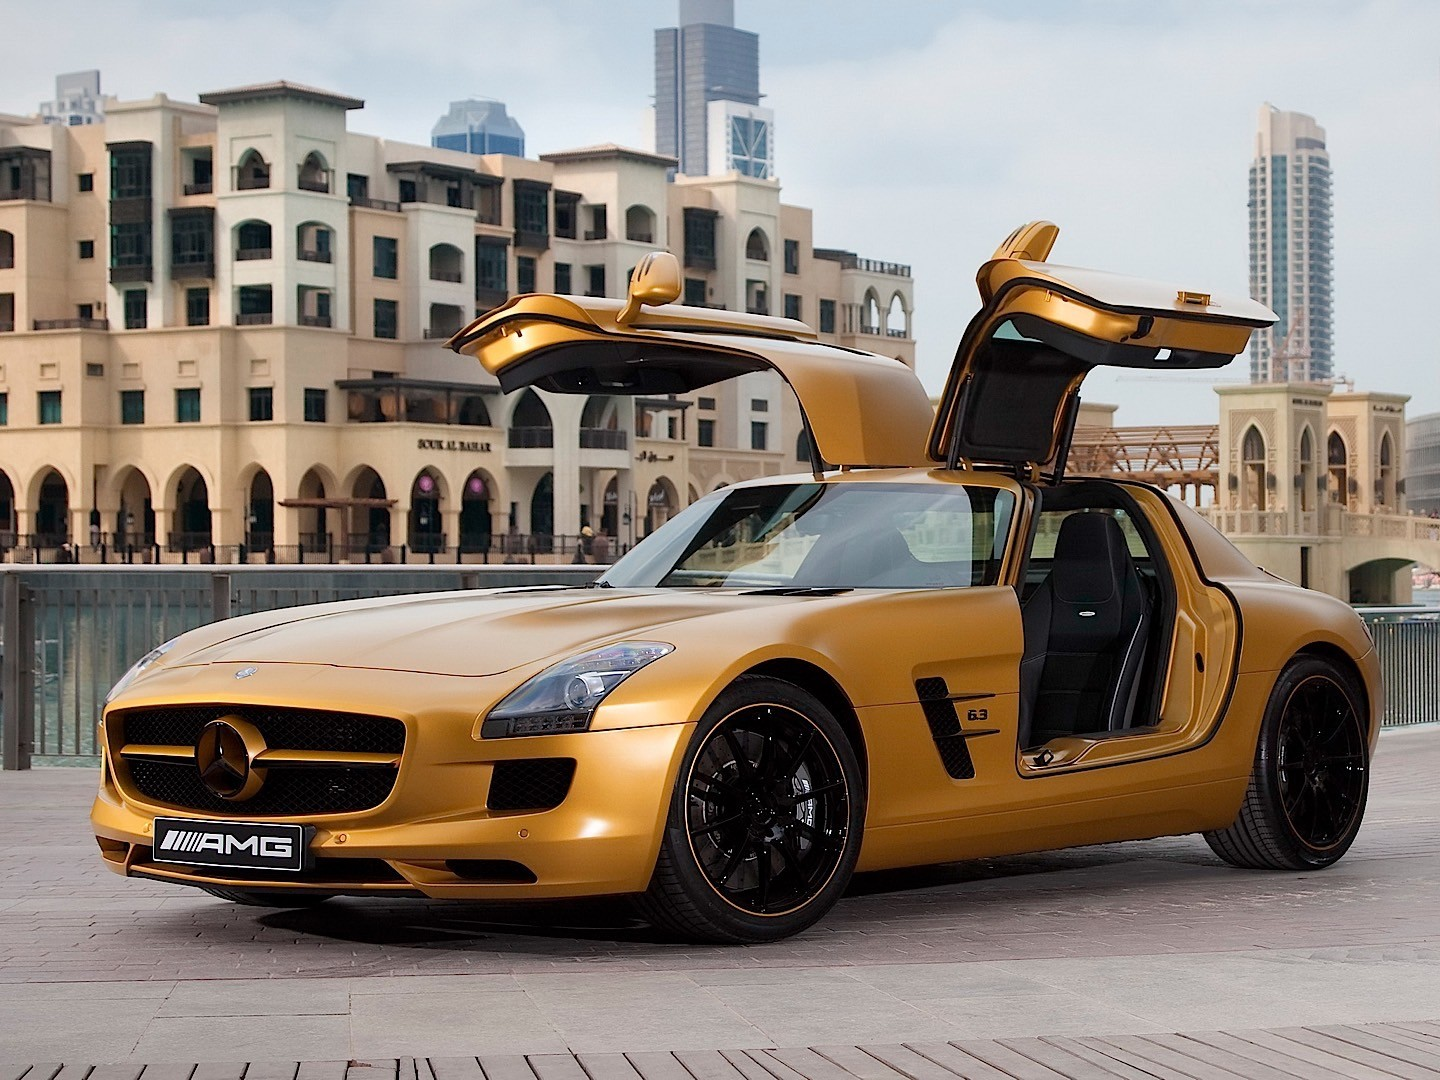 mercedes benz sls amg c197 specs 2010 2011 2012 2013 2014 2015 autoevolution. Black Bedroom Furniture Sets. Home Design Ideas